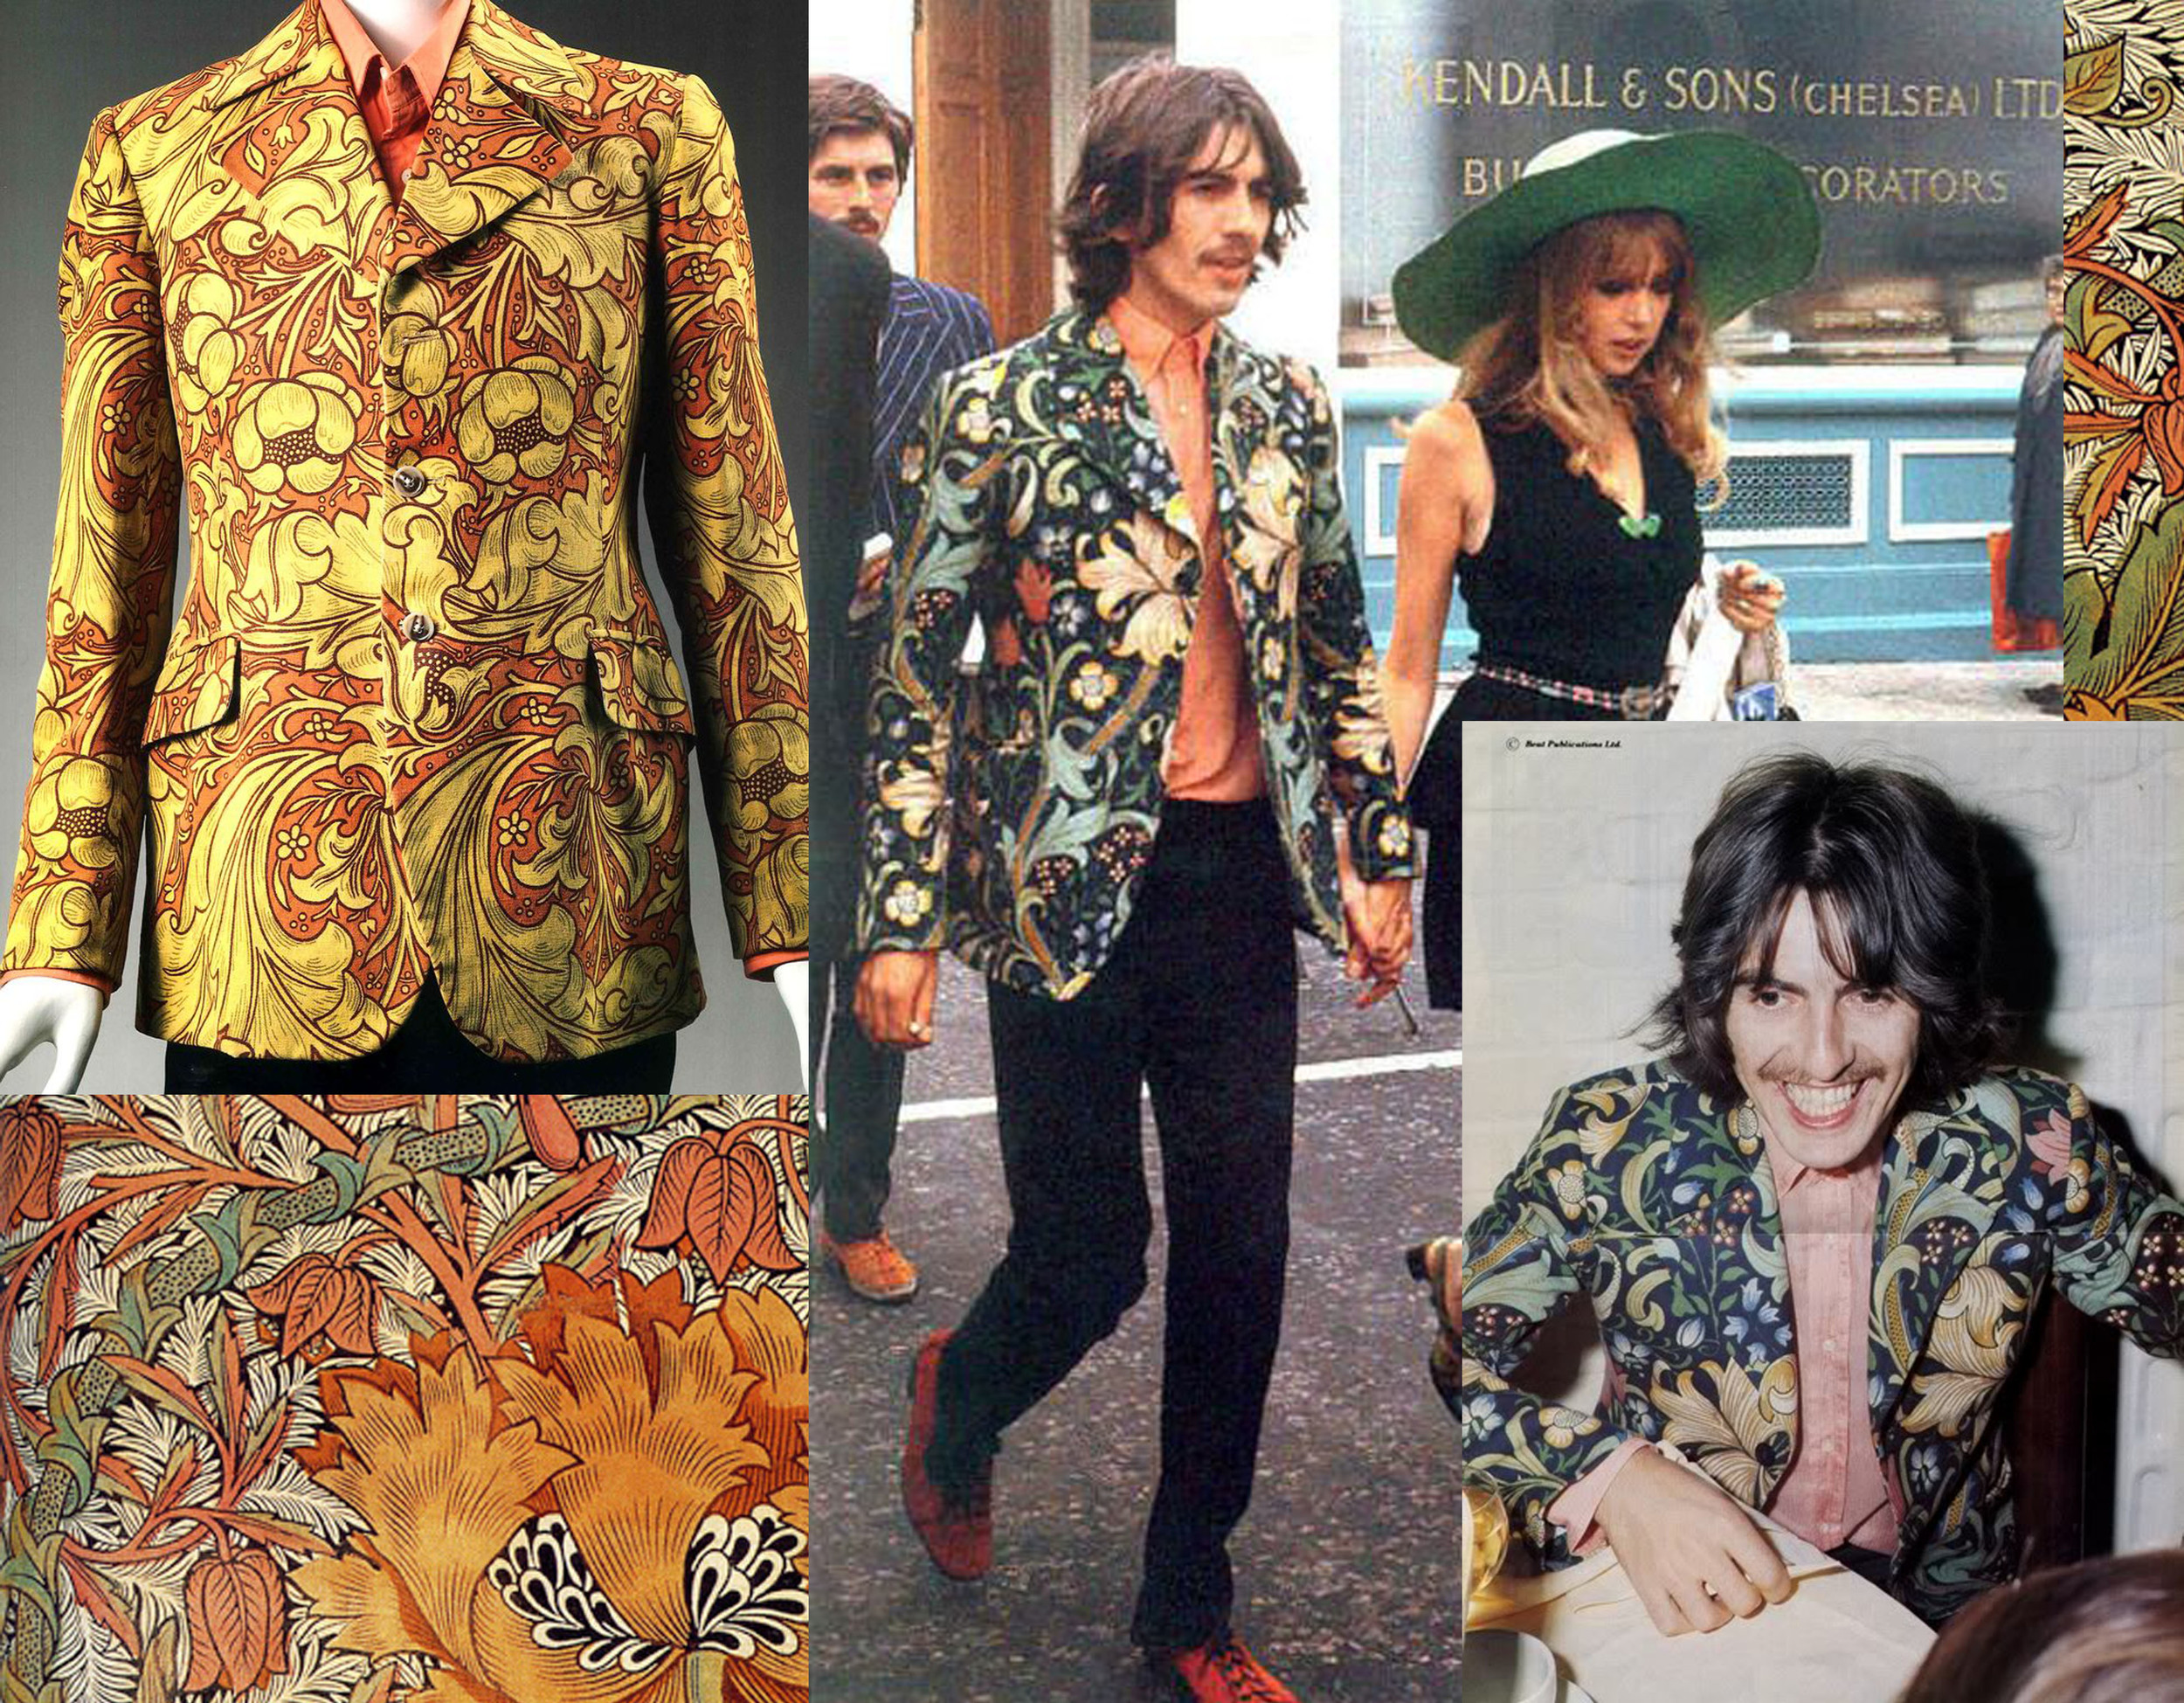 The fabrics got very popular and even used in fashion - Jacket of George Harrison in Morris & Co fabric